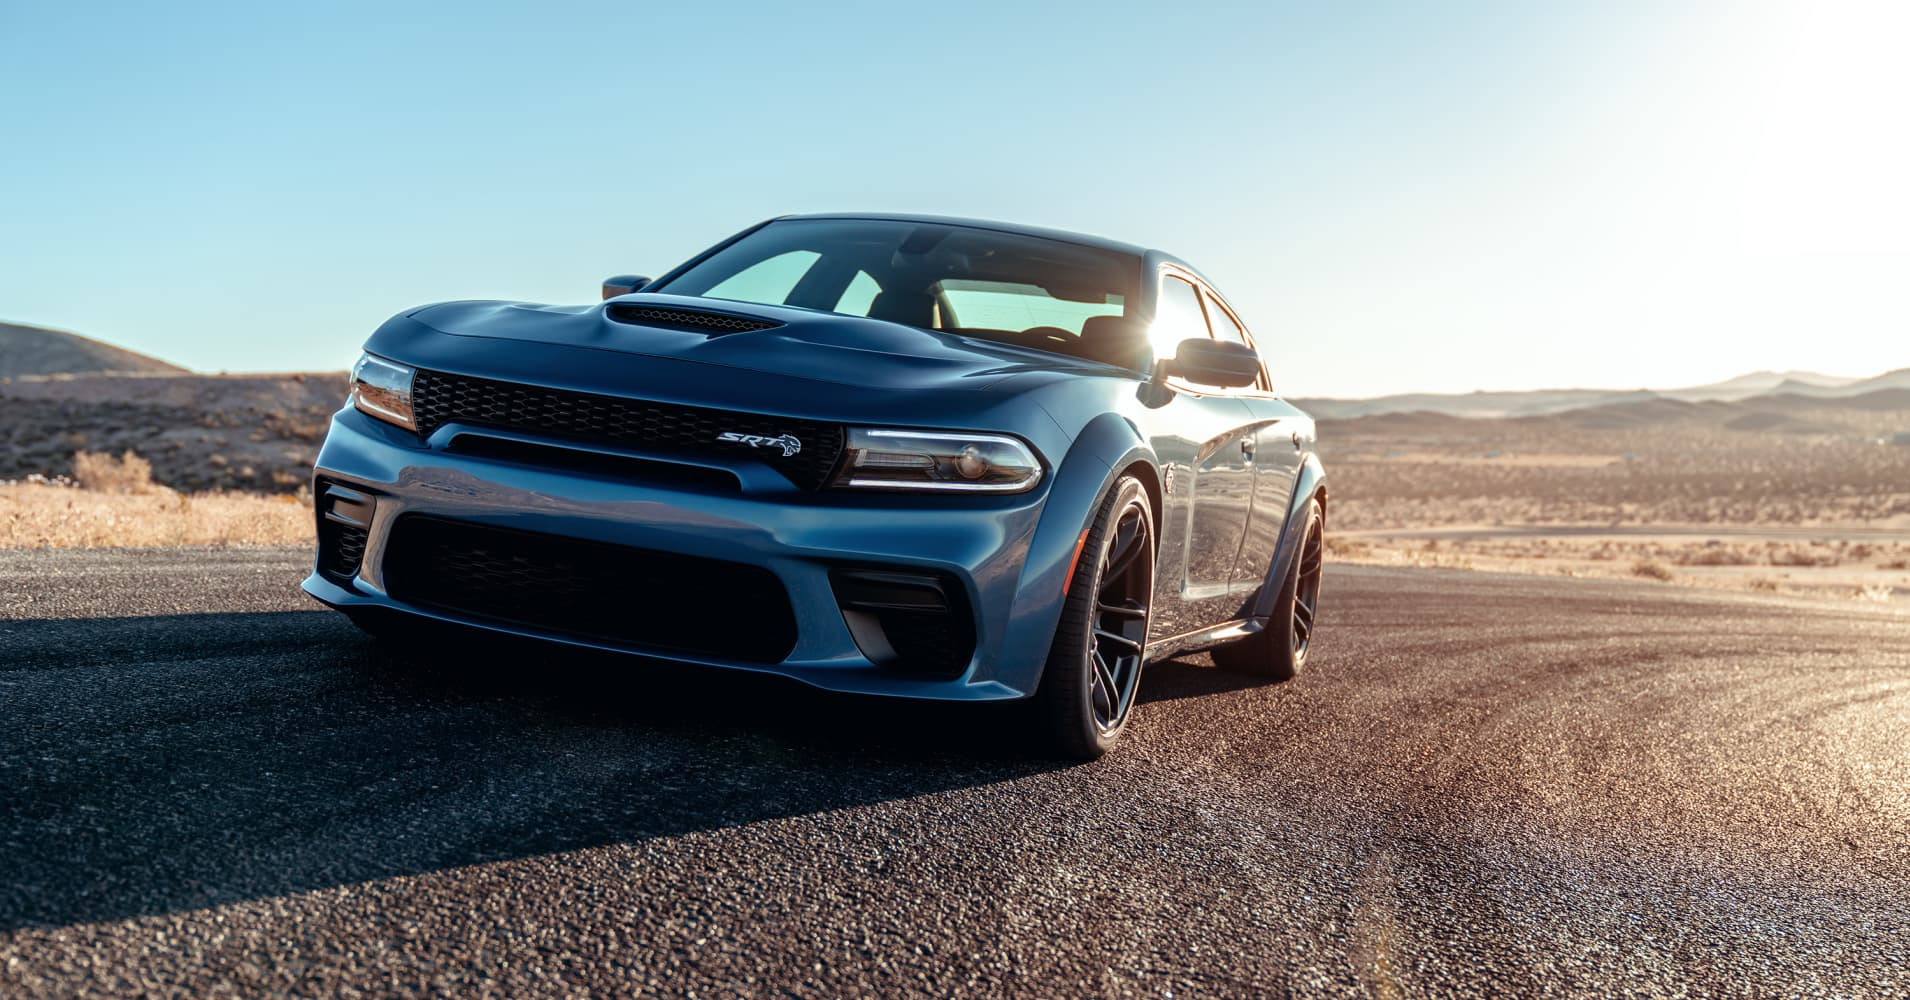 Dodge Just Unveiled The New 2020 Dodge Charger Hellcat And Scat Pack